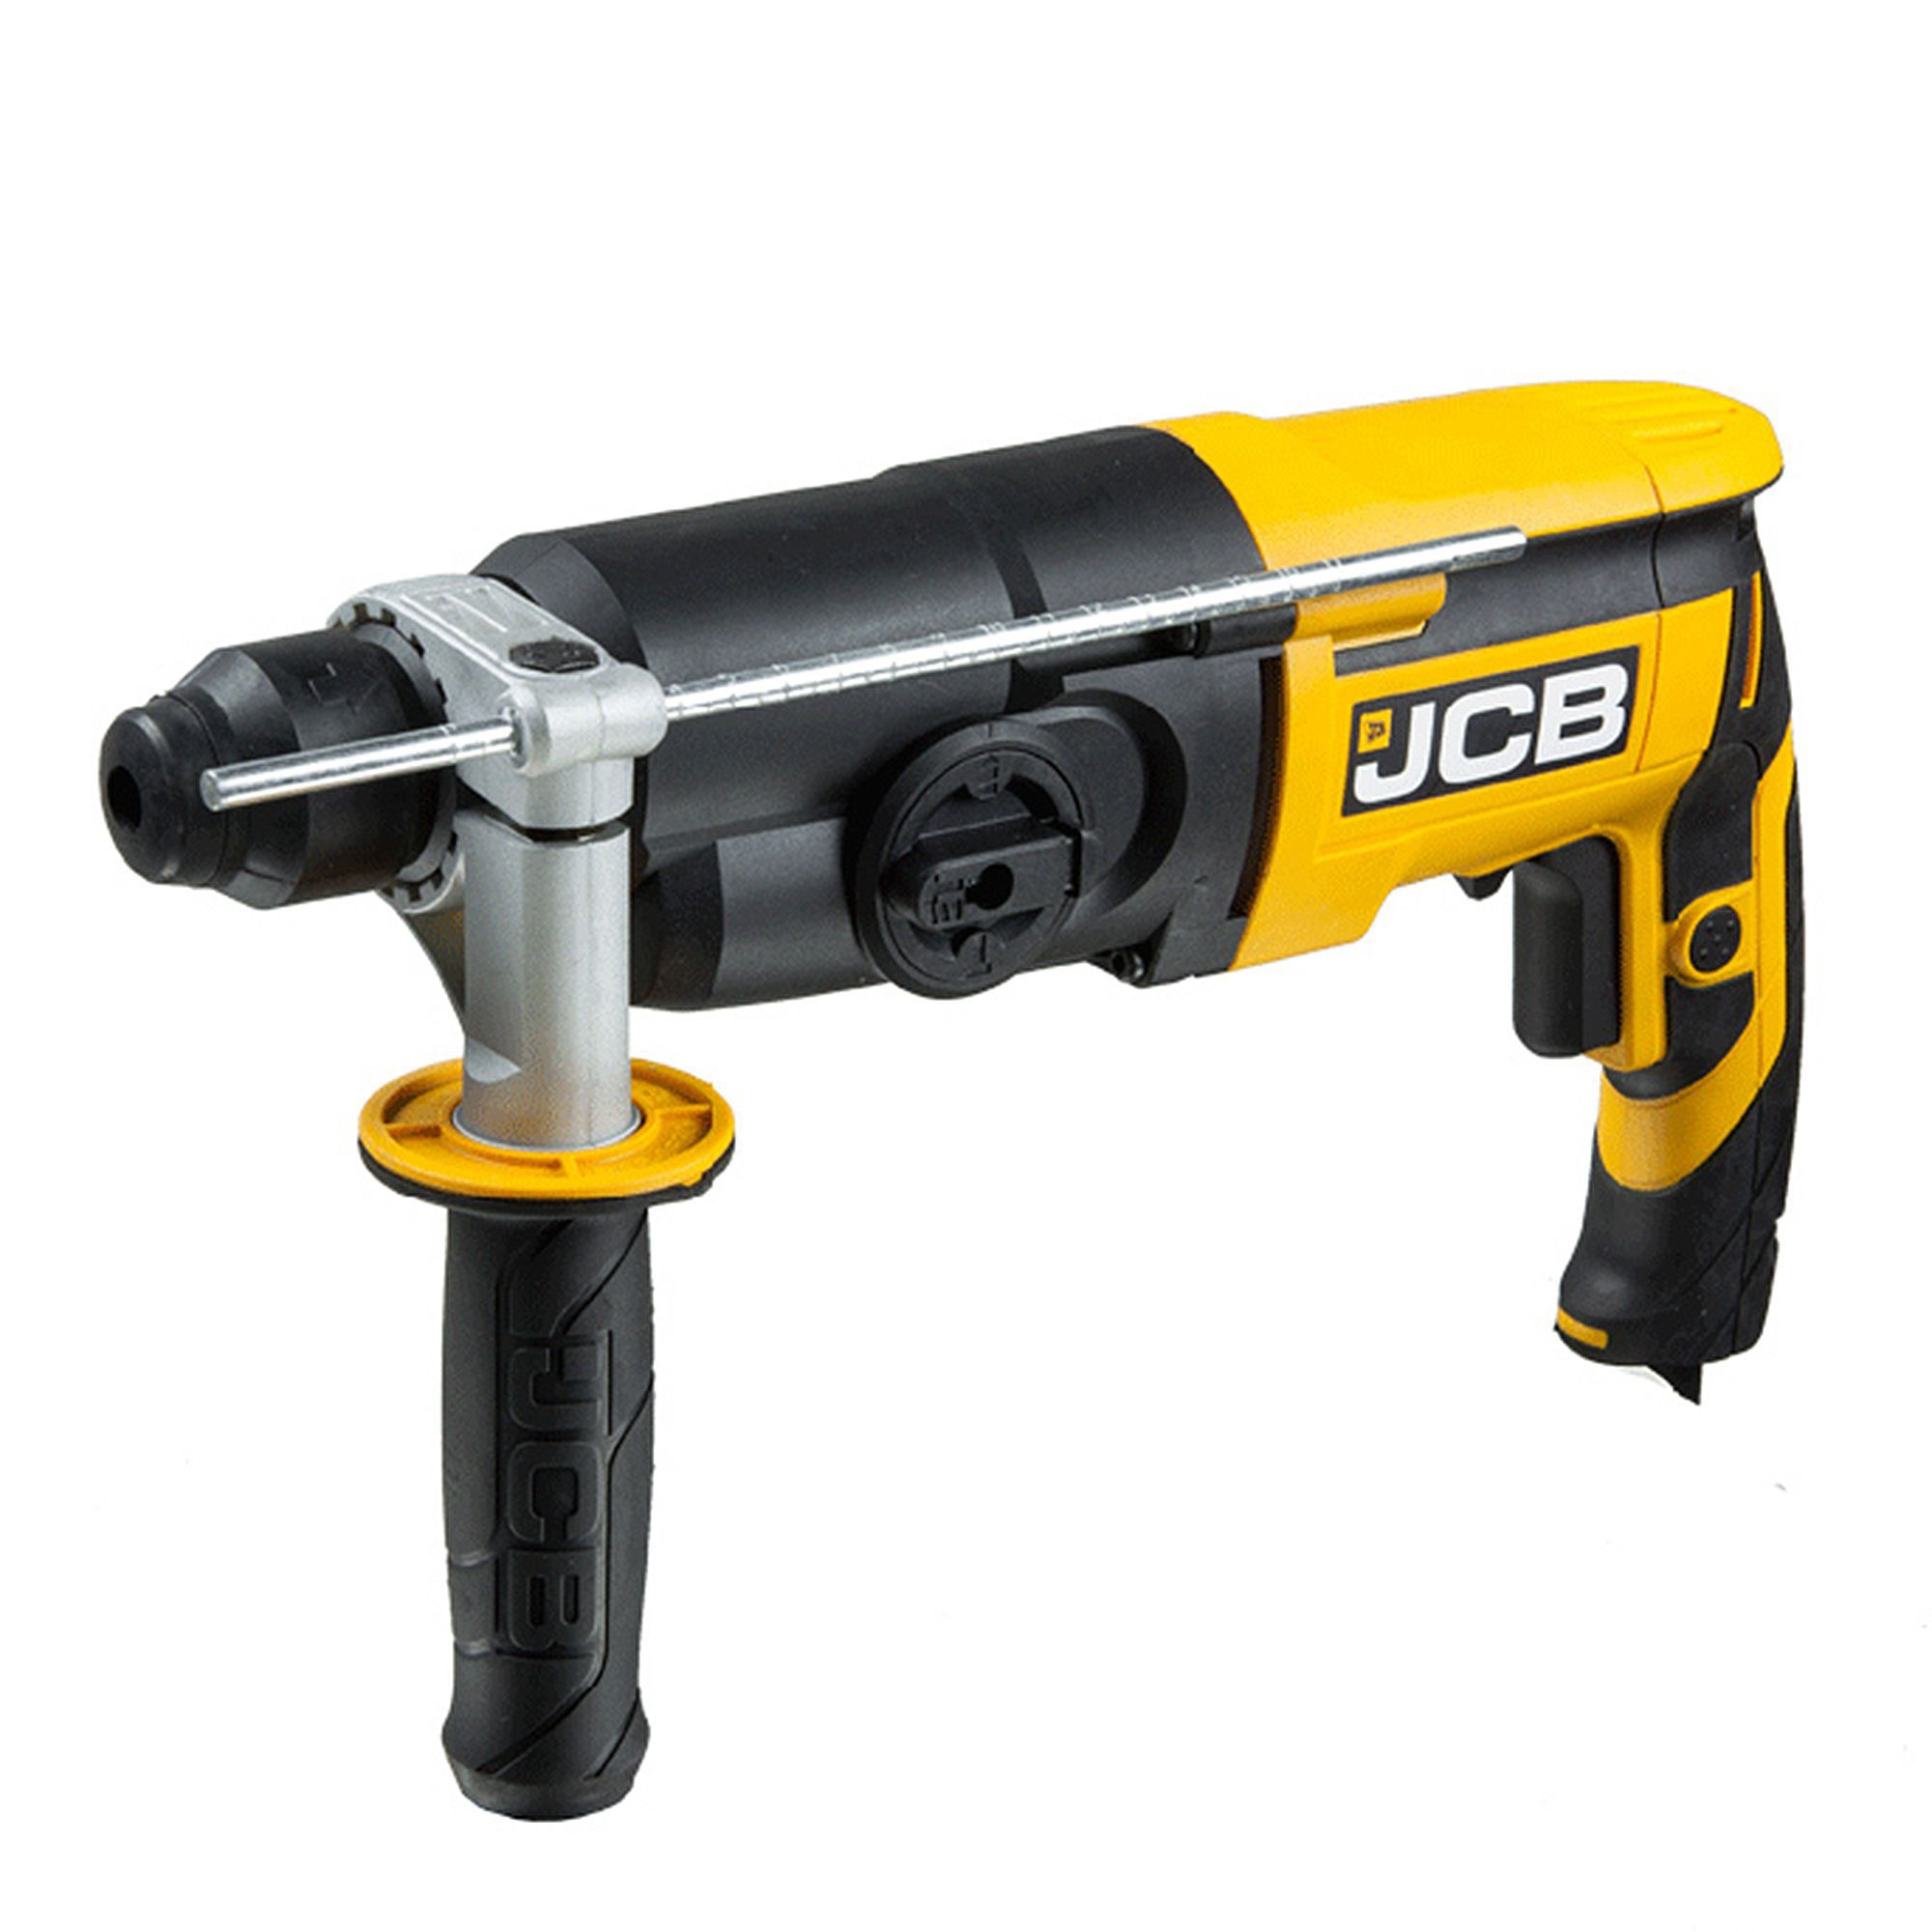 Jcb 780w Corded Sds Plus Brushed Hammer Drill Pdh26j2 Departments Diy At B Q